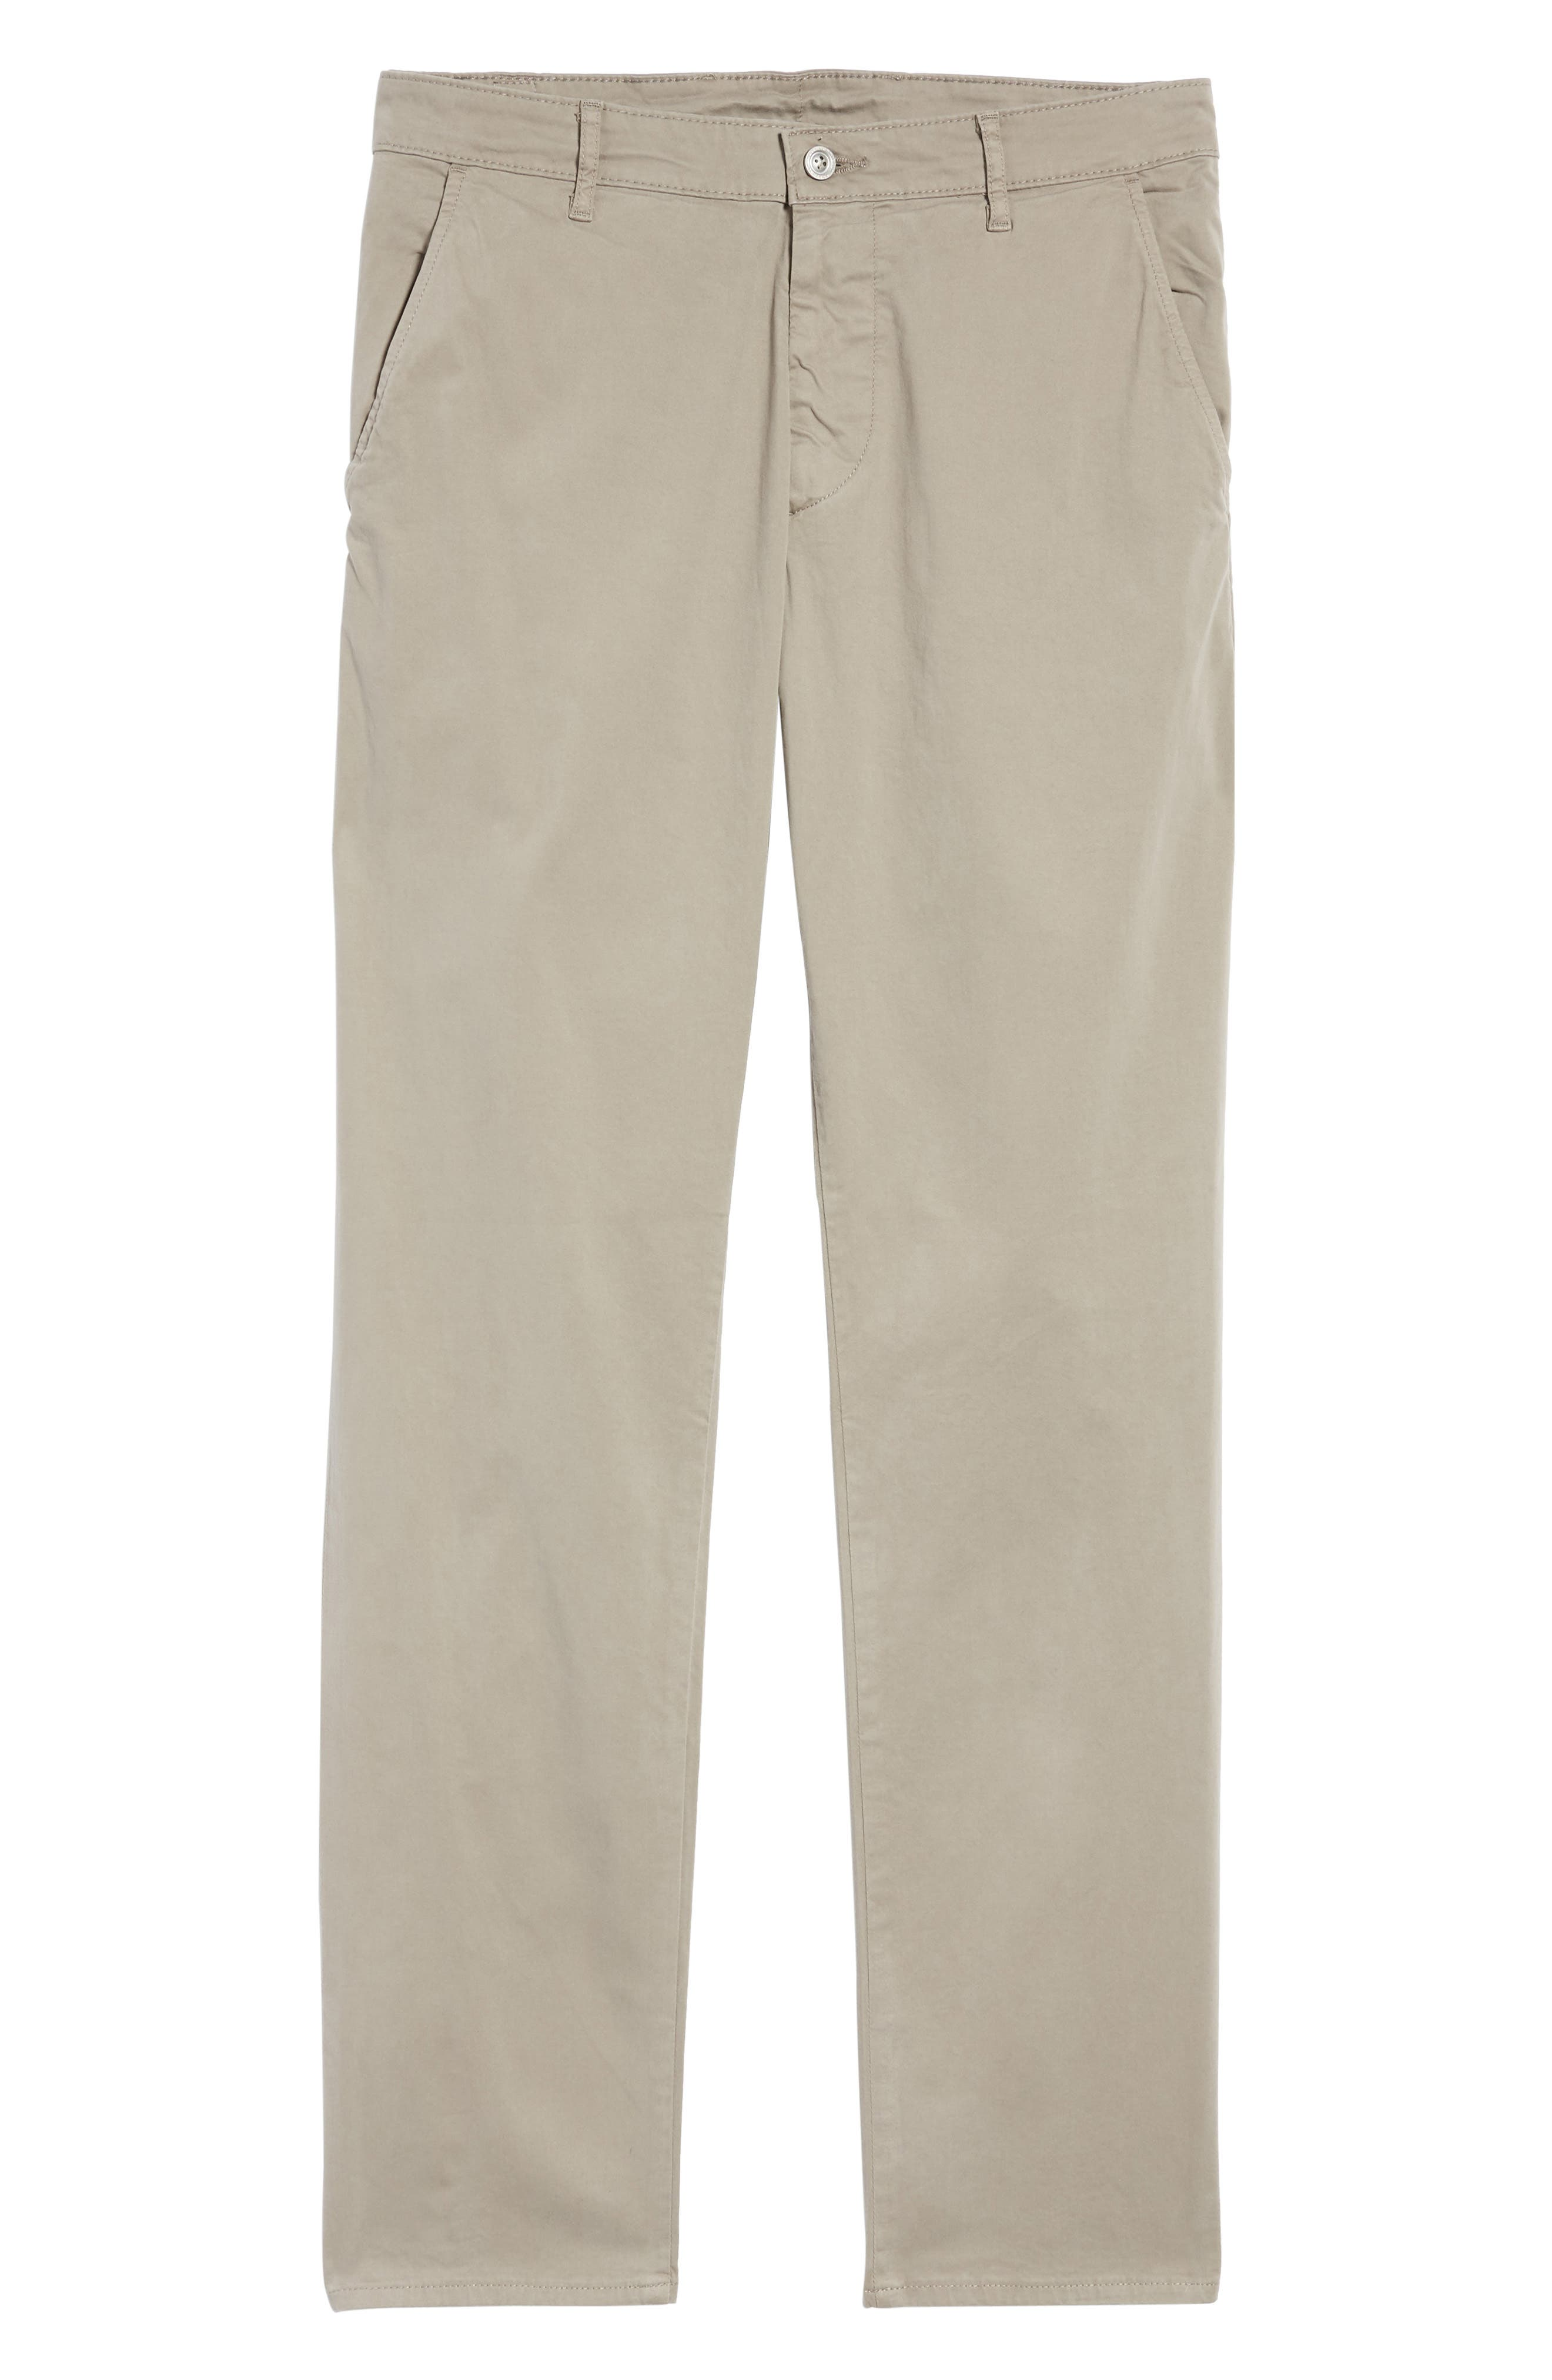 'The Lux' Tailored Straight Leg Chinos,                             Alternate thumbnail 27, color,